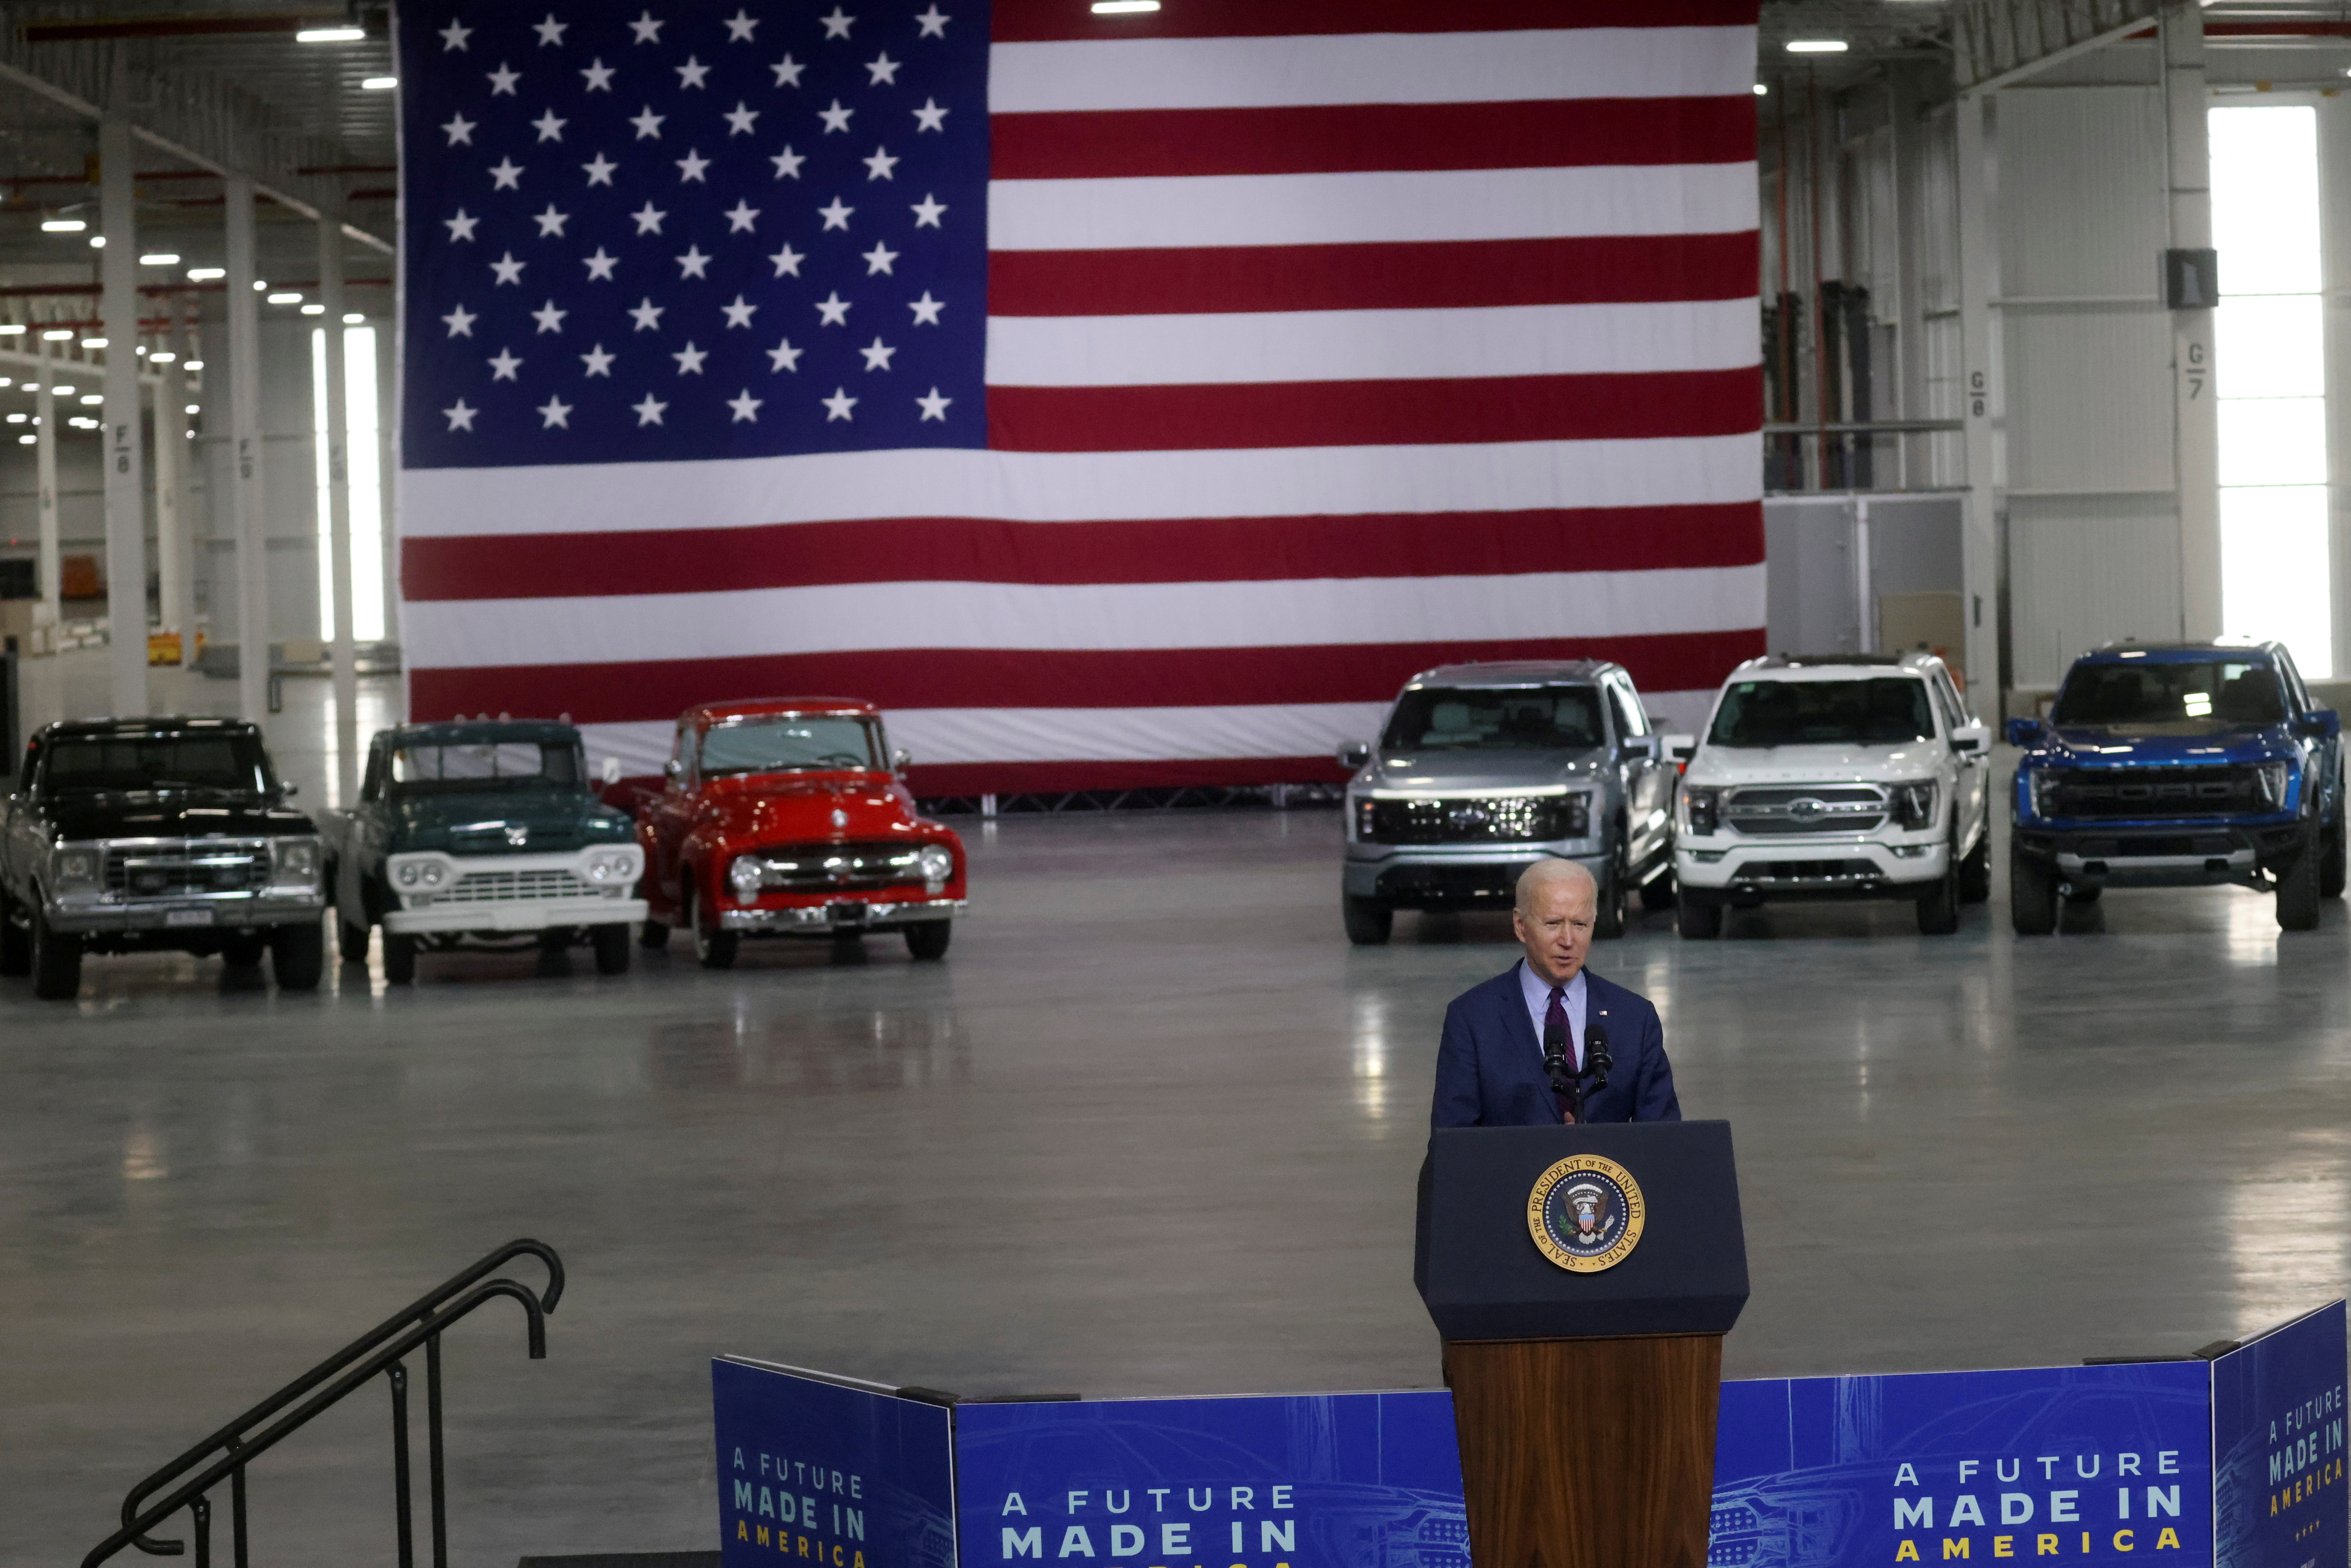 U.S. President Joe Biden delivers remarks after touring Ford Rouge Electric Vehicle Center in Dearborn, Michigan, U.S., May 18, 2021.  REUTERS/Leah Millis/File Photo